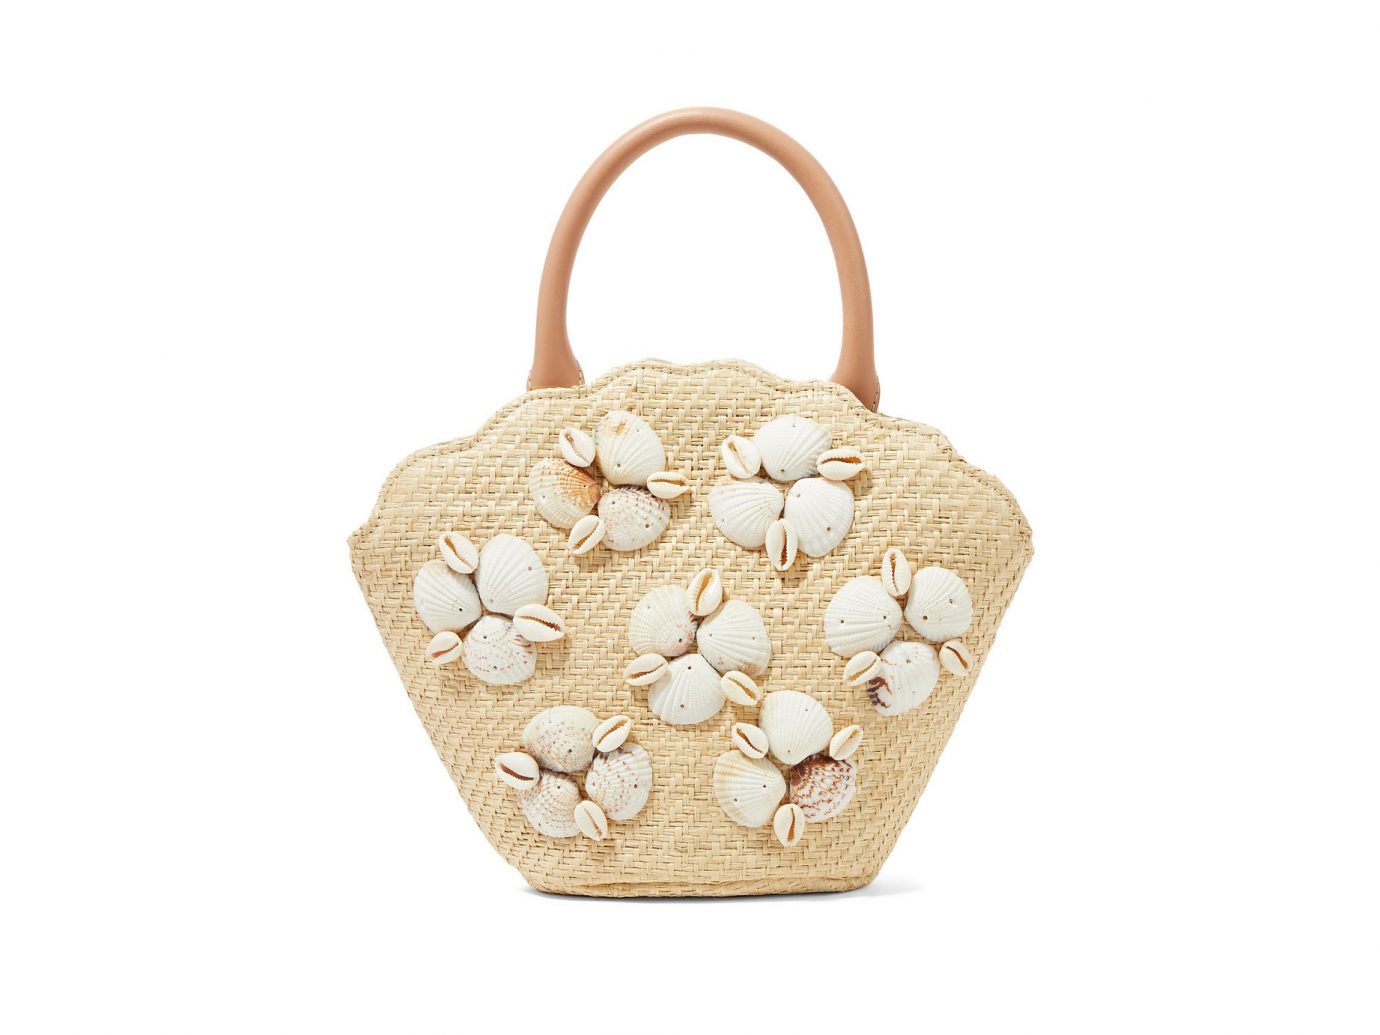 Loeffler Randall Aria leather-trimmed shell-embellished woven straw tote